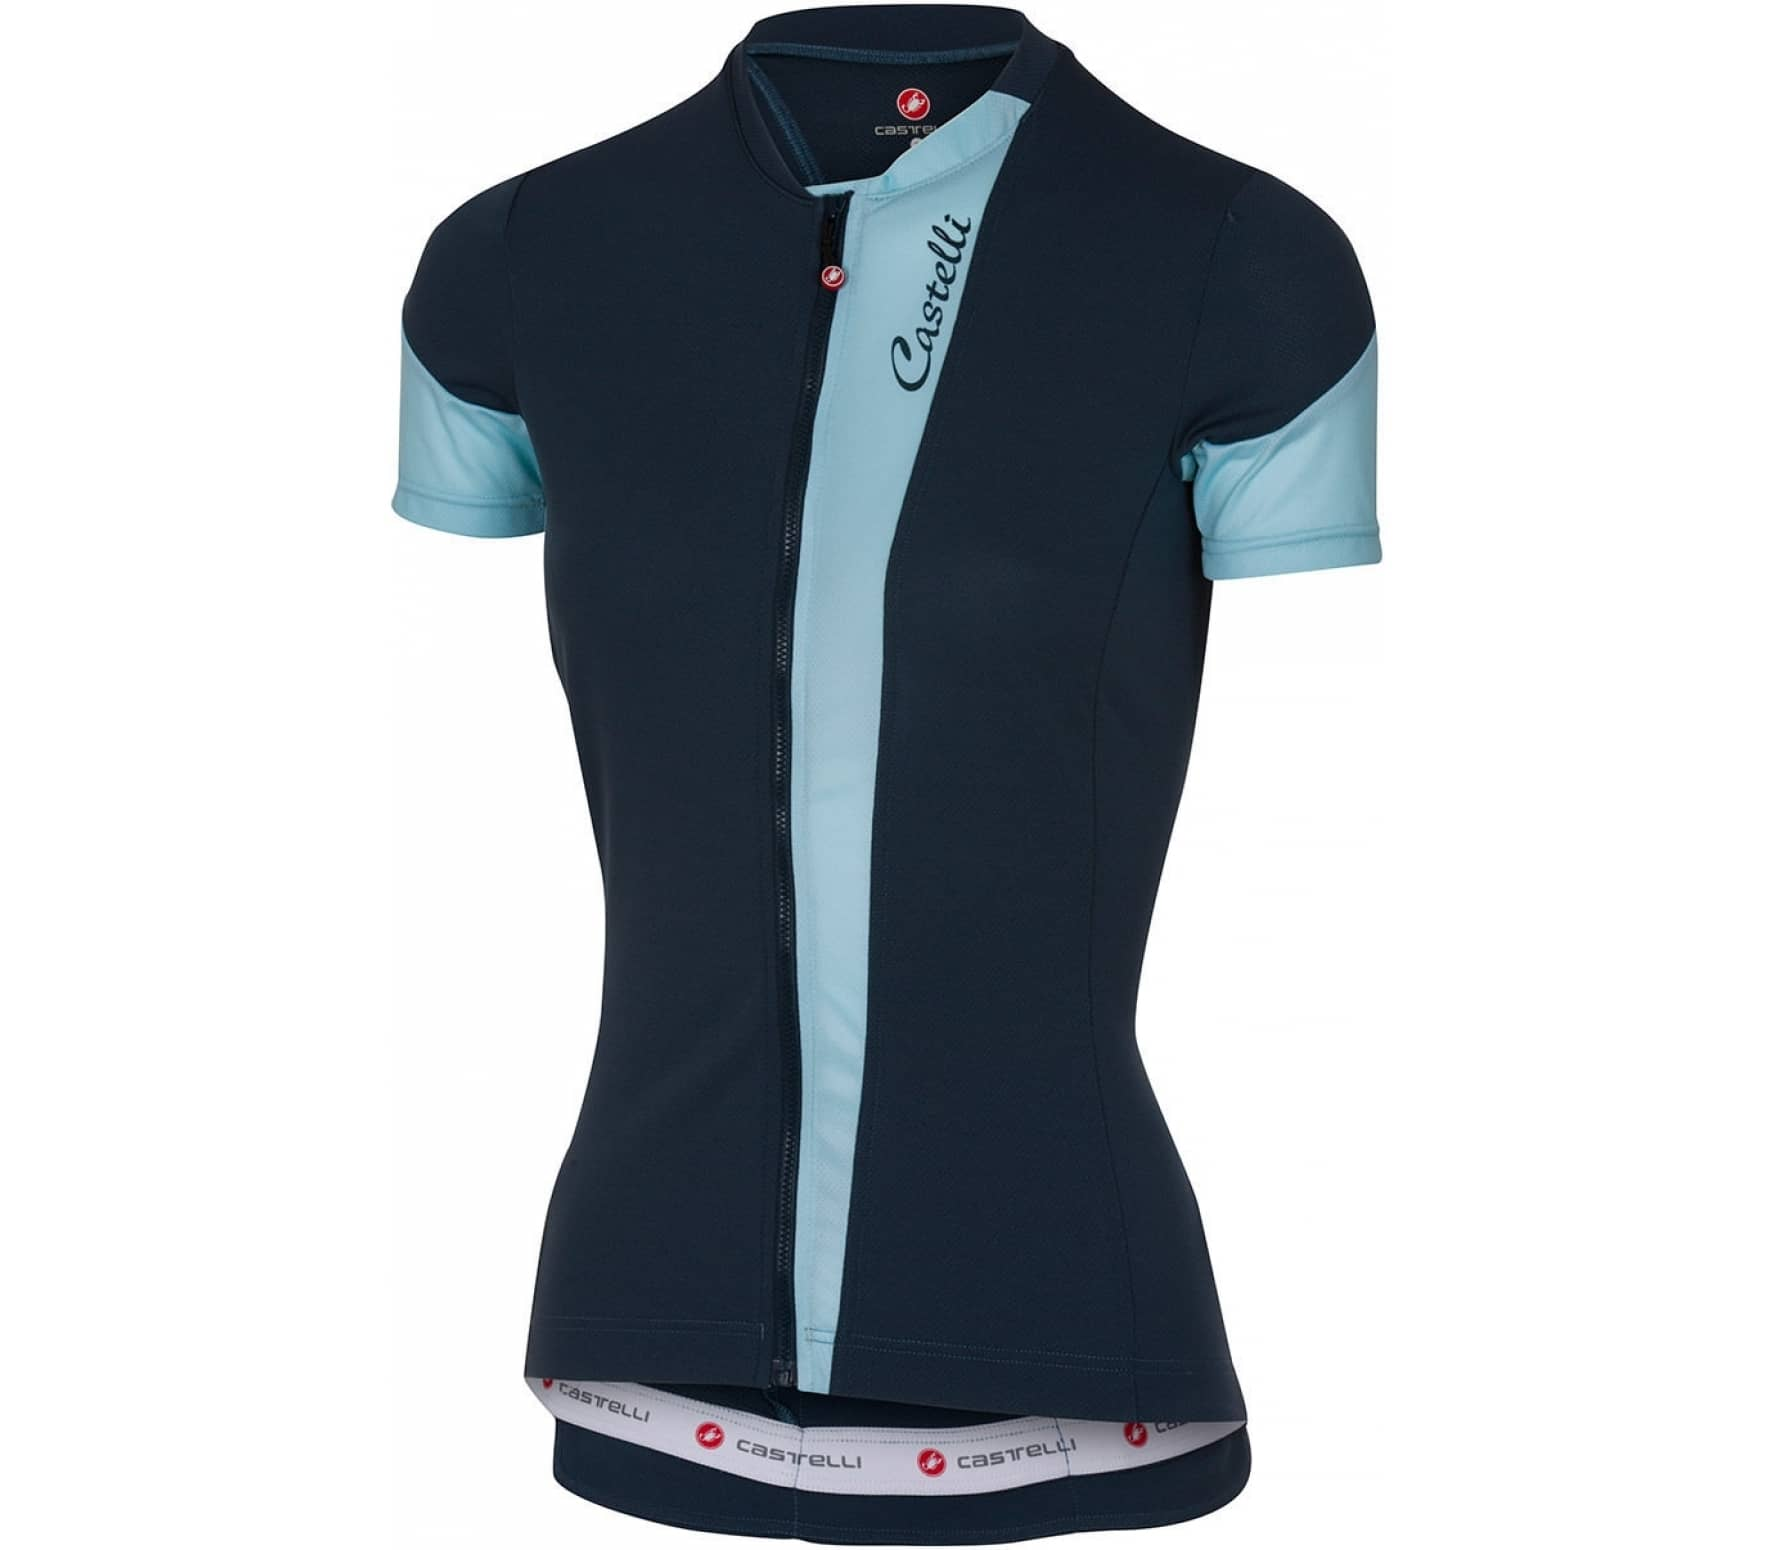 castelli spada jersey fz damen bike trikot blau im. Black Bedroom Furniture Sets. Home Design Ideas